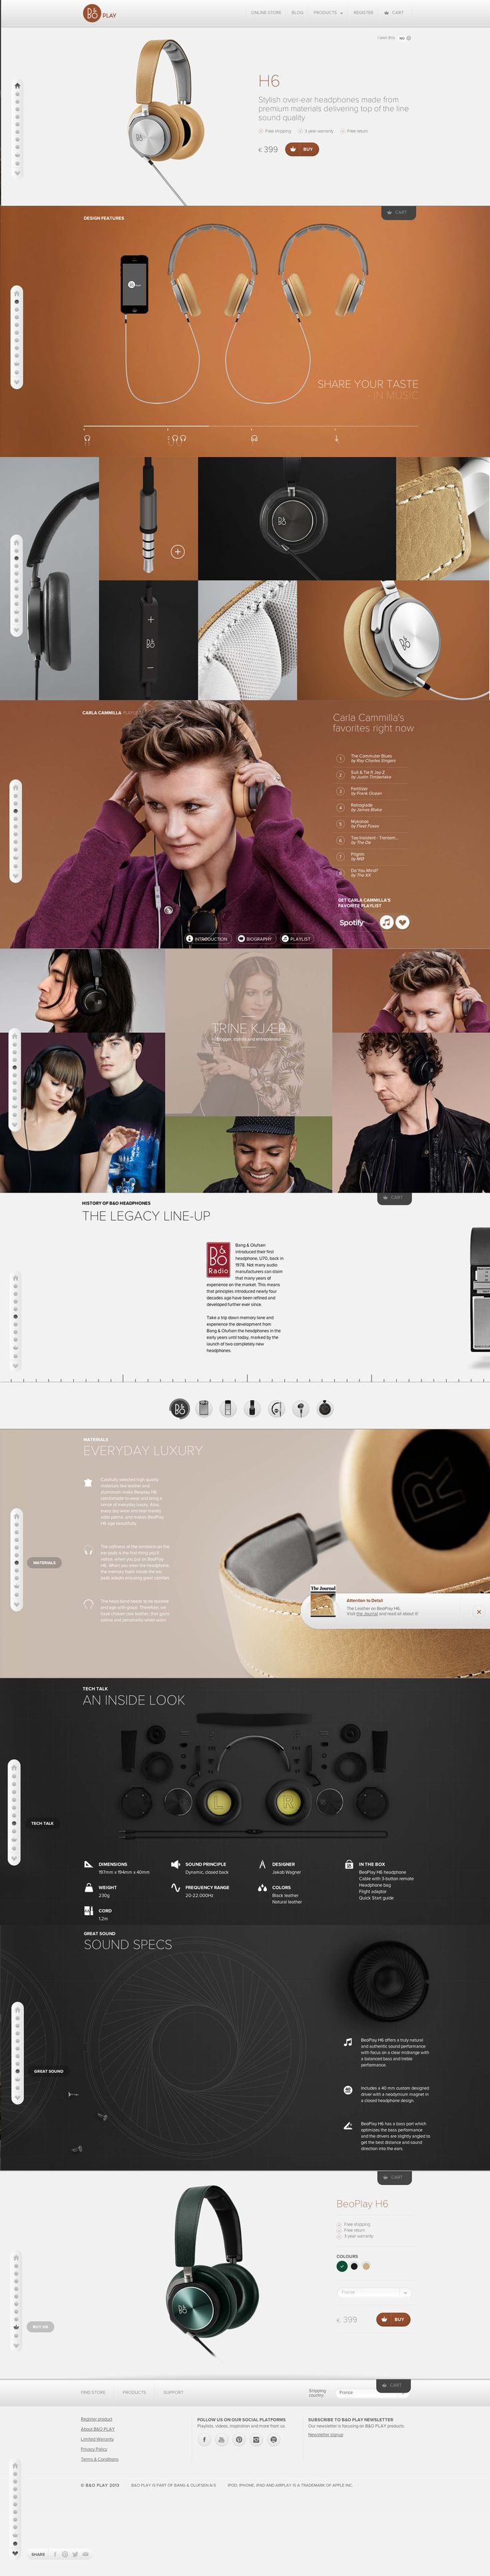 Beo Play - #inspiration #produit #webdesign #music #sound #website #ux #ui